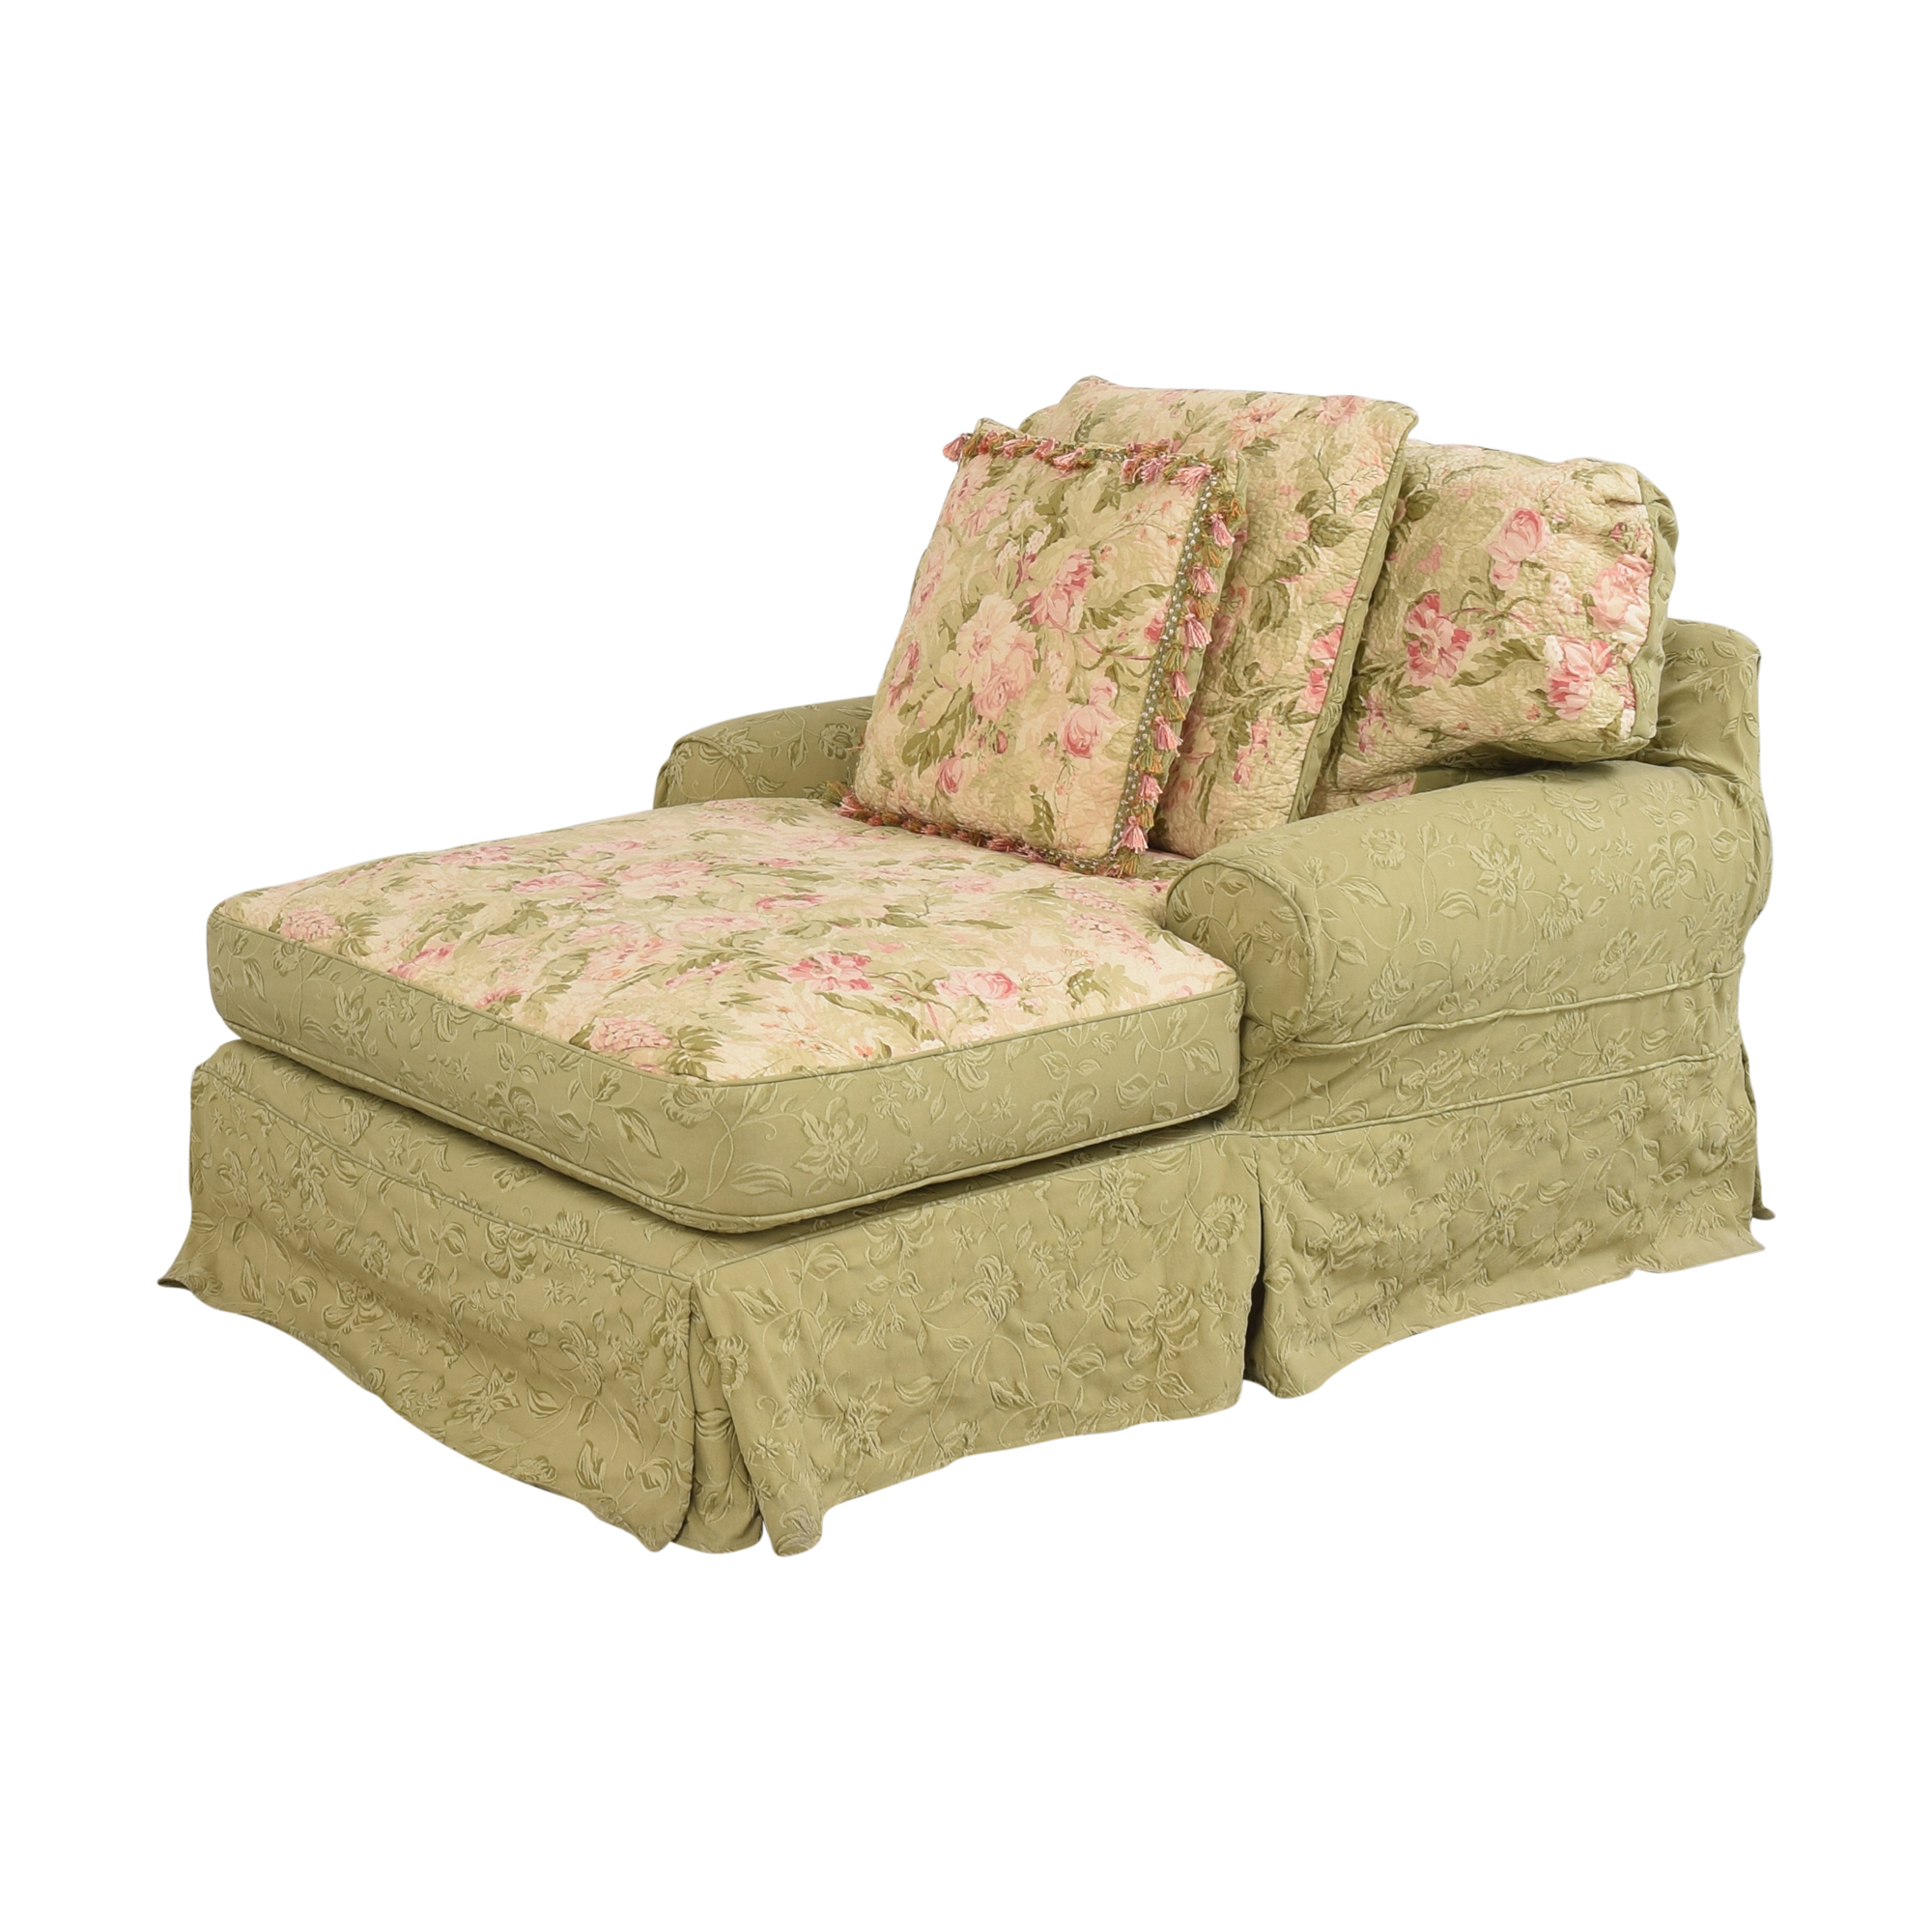 buy Domain Home Slipcovered Chaise Lounge Domain